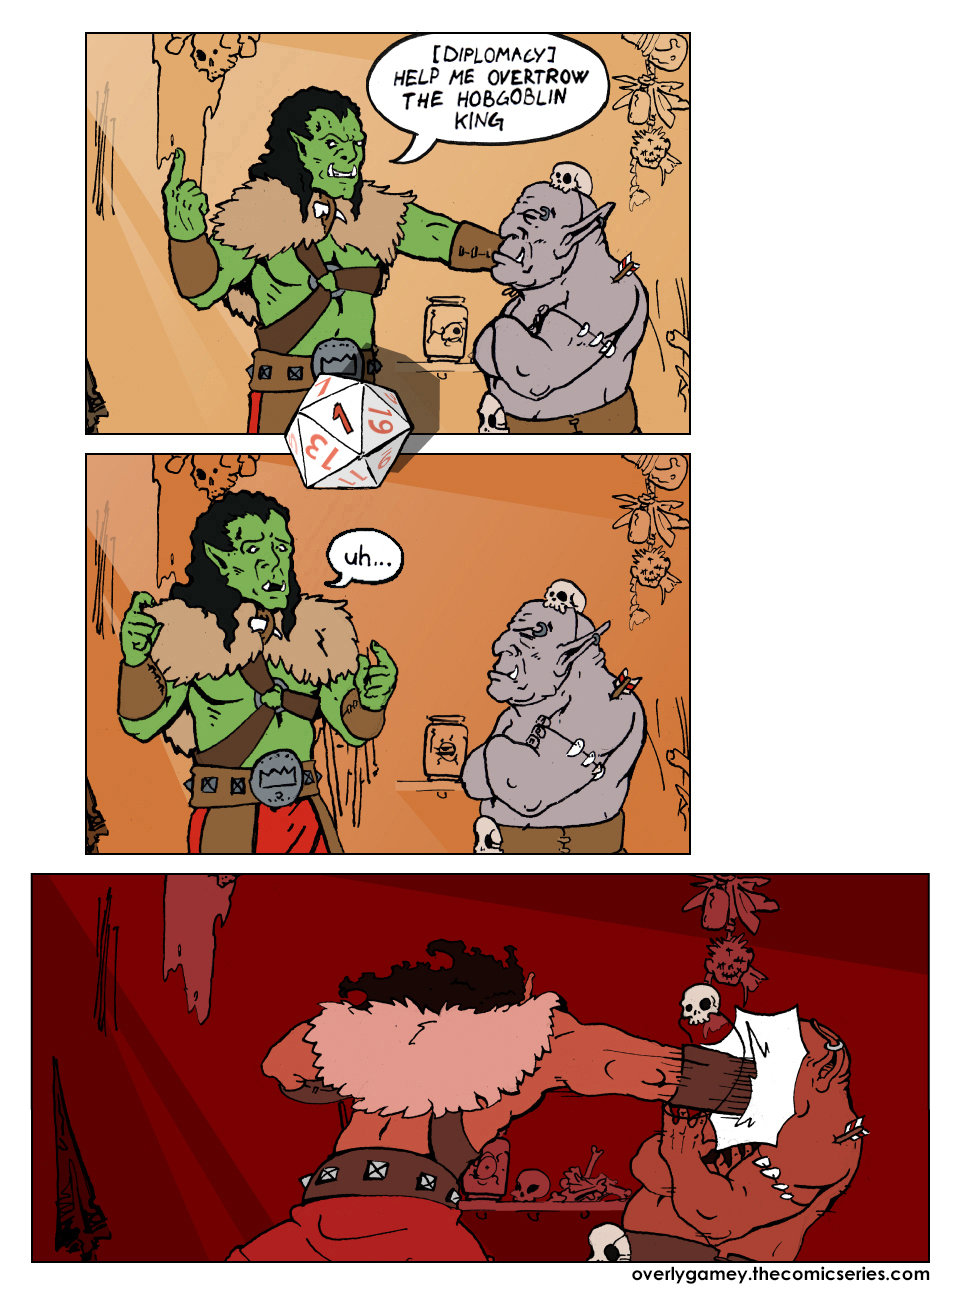 Orc Diplomacy